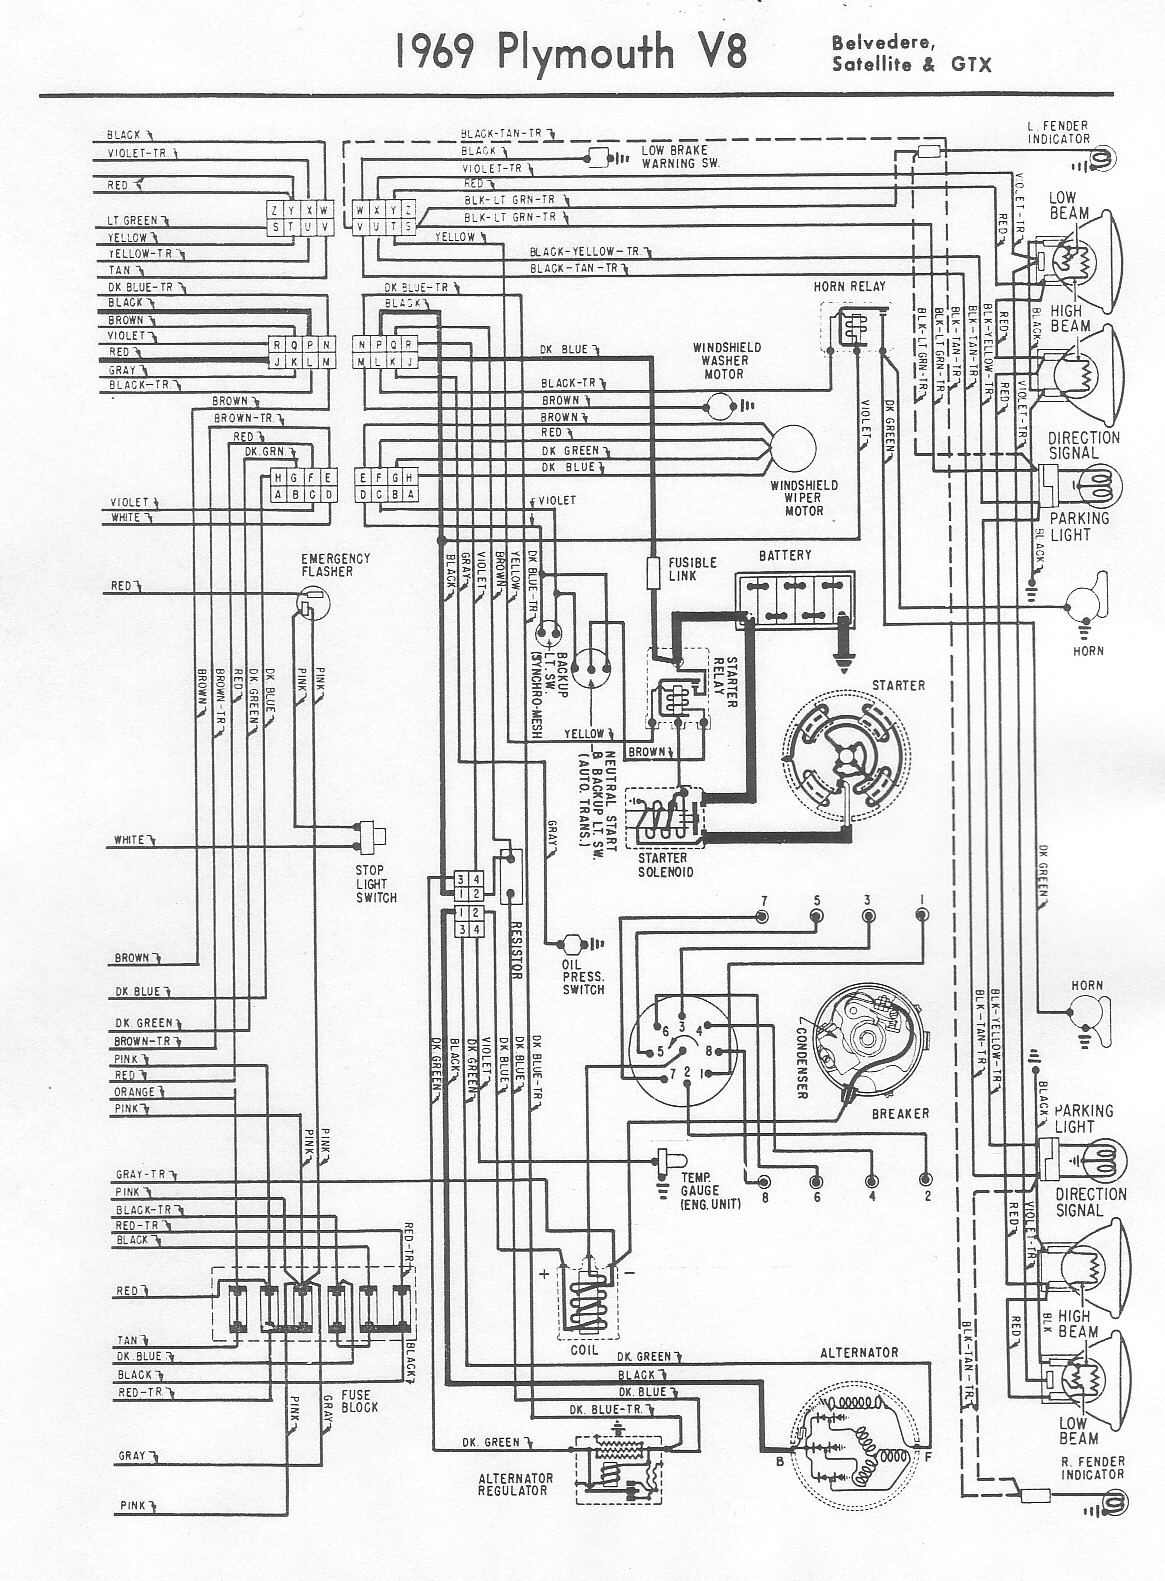 69 roadrunner wiring diagram dashboard light the lift off hood playground - what's this wire?